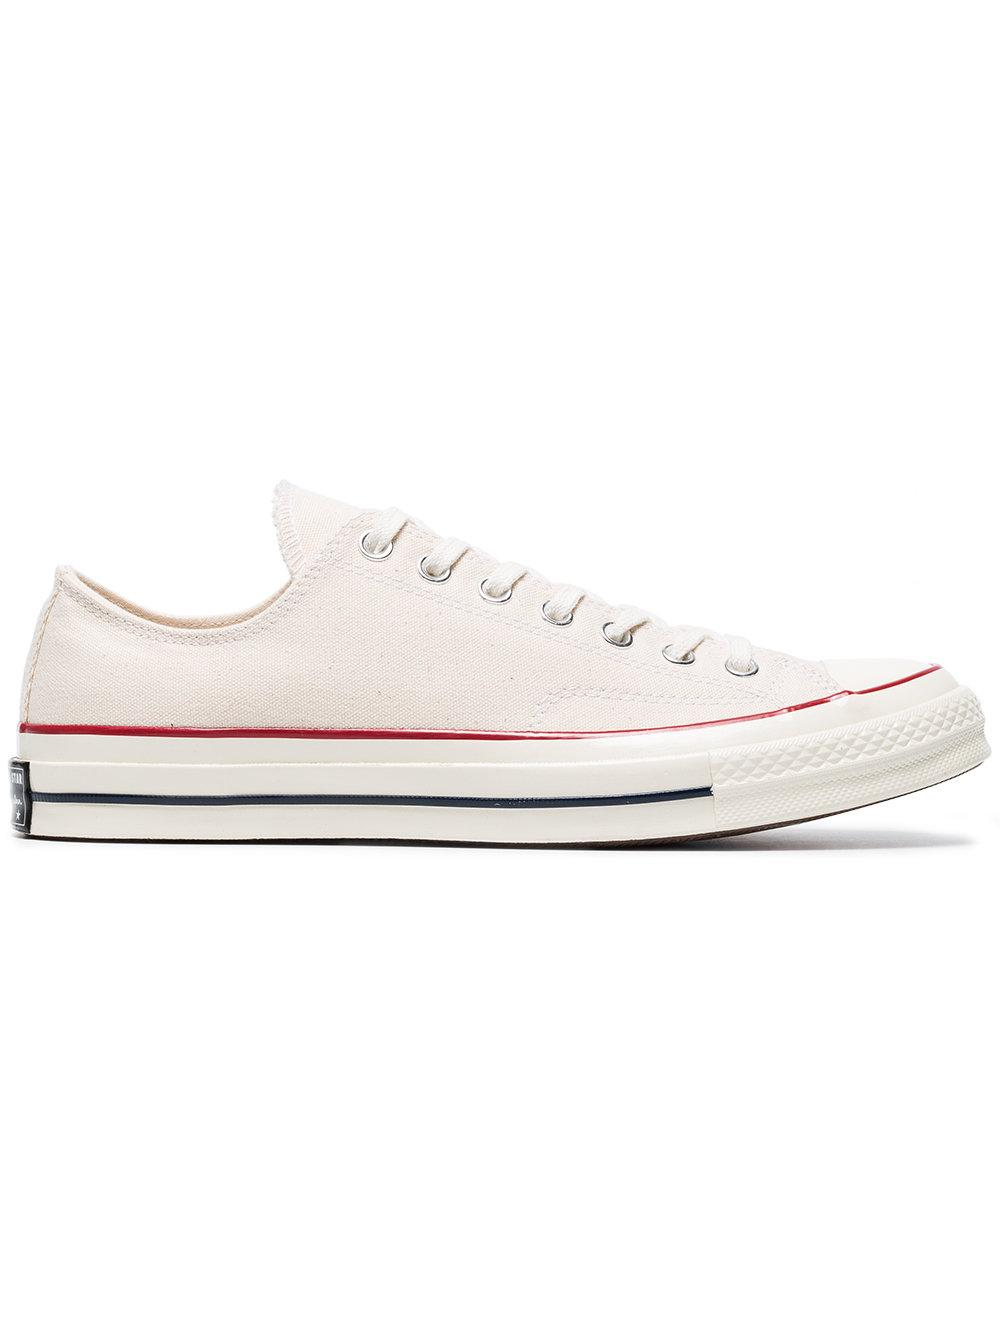 f293c0923bfe Converse Chuck Taylor All Star 70 Vintage Canvas Sneakers In White ...